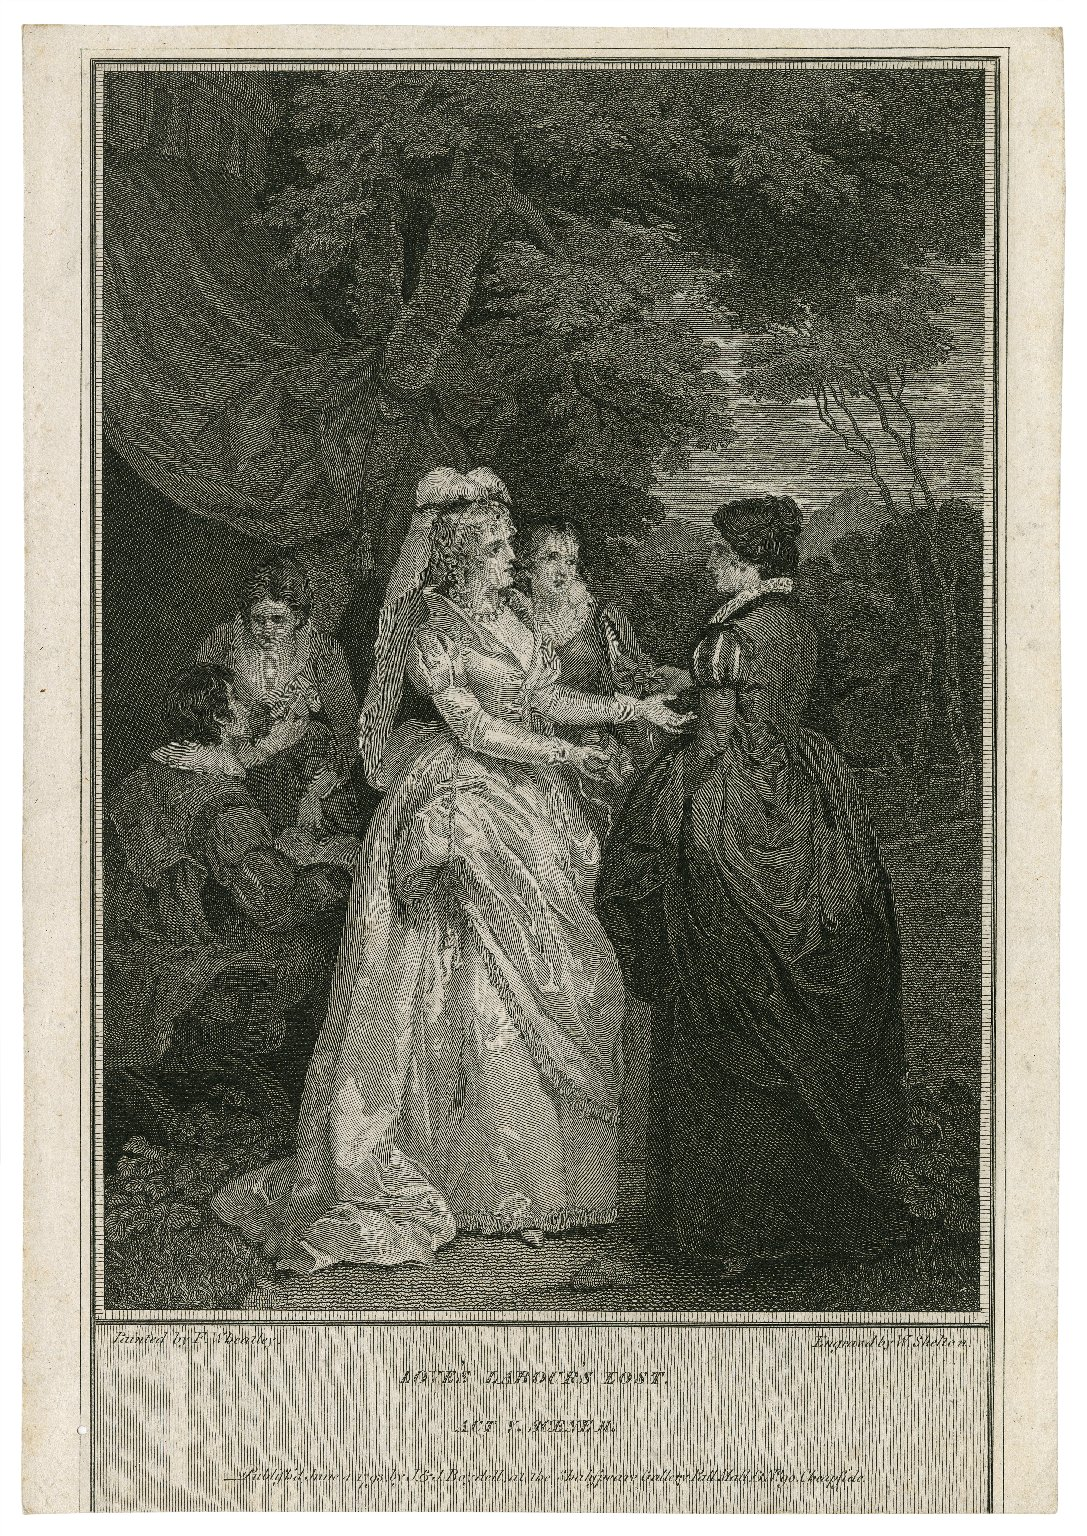 Love's labour's lost, act V, scene II [graphic] / painted by F. Wheatley ; engraved by W. Skelton.